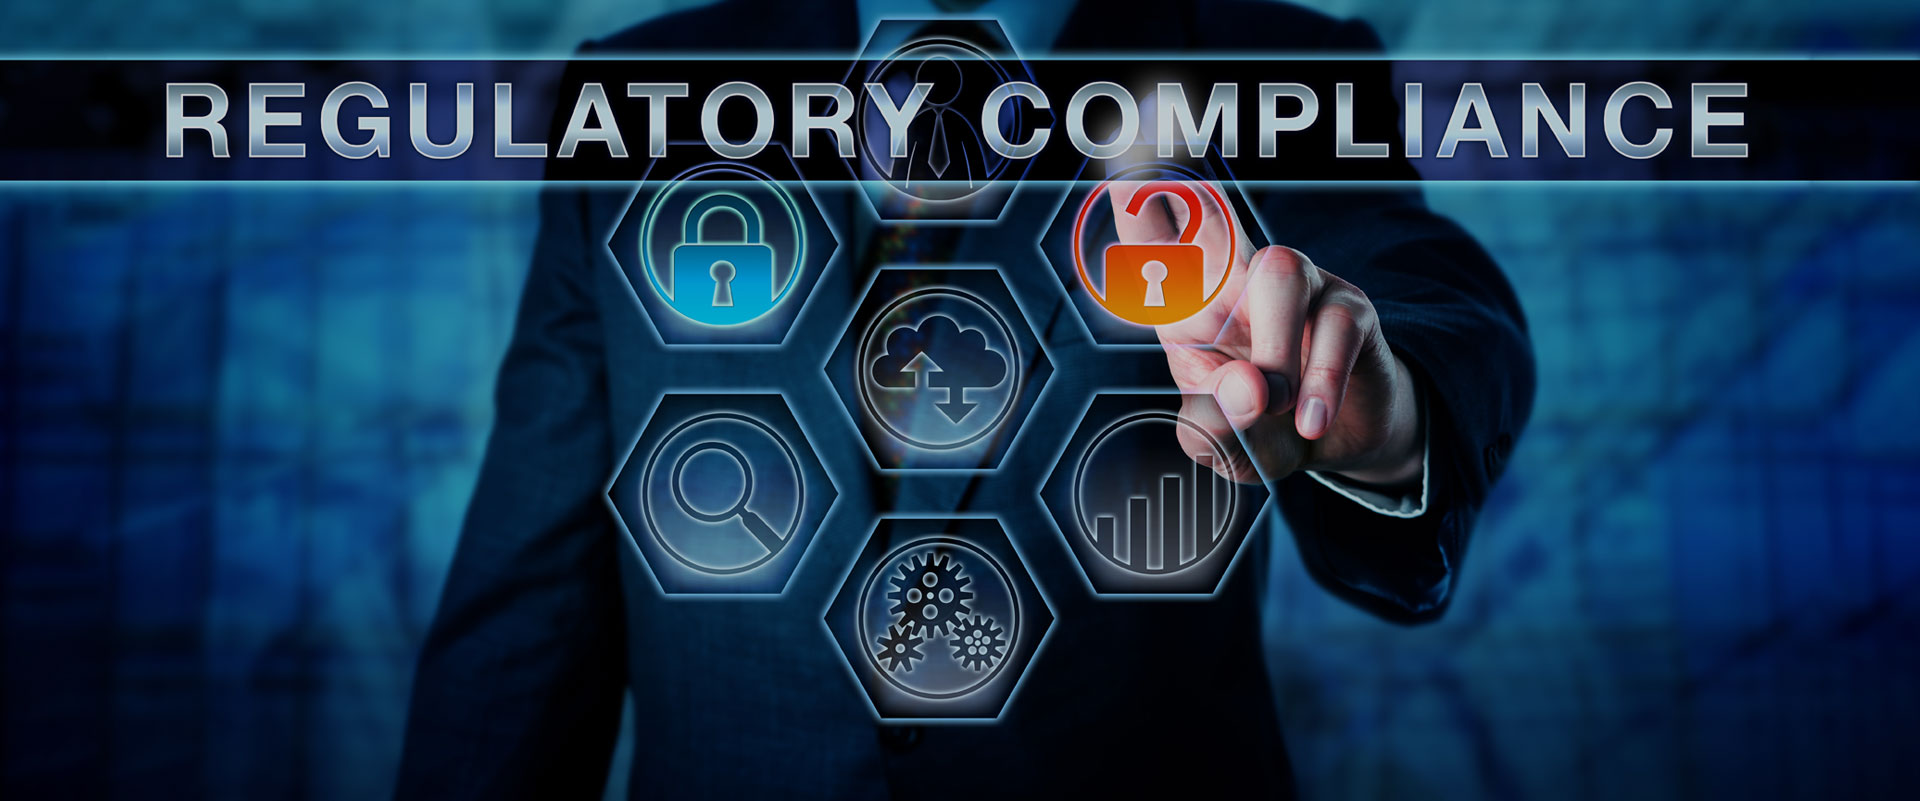 Meet Regulatory Compliance Requirements with EAID Solution